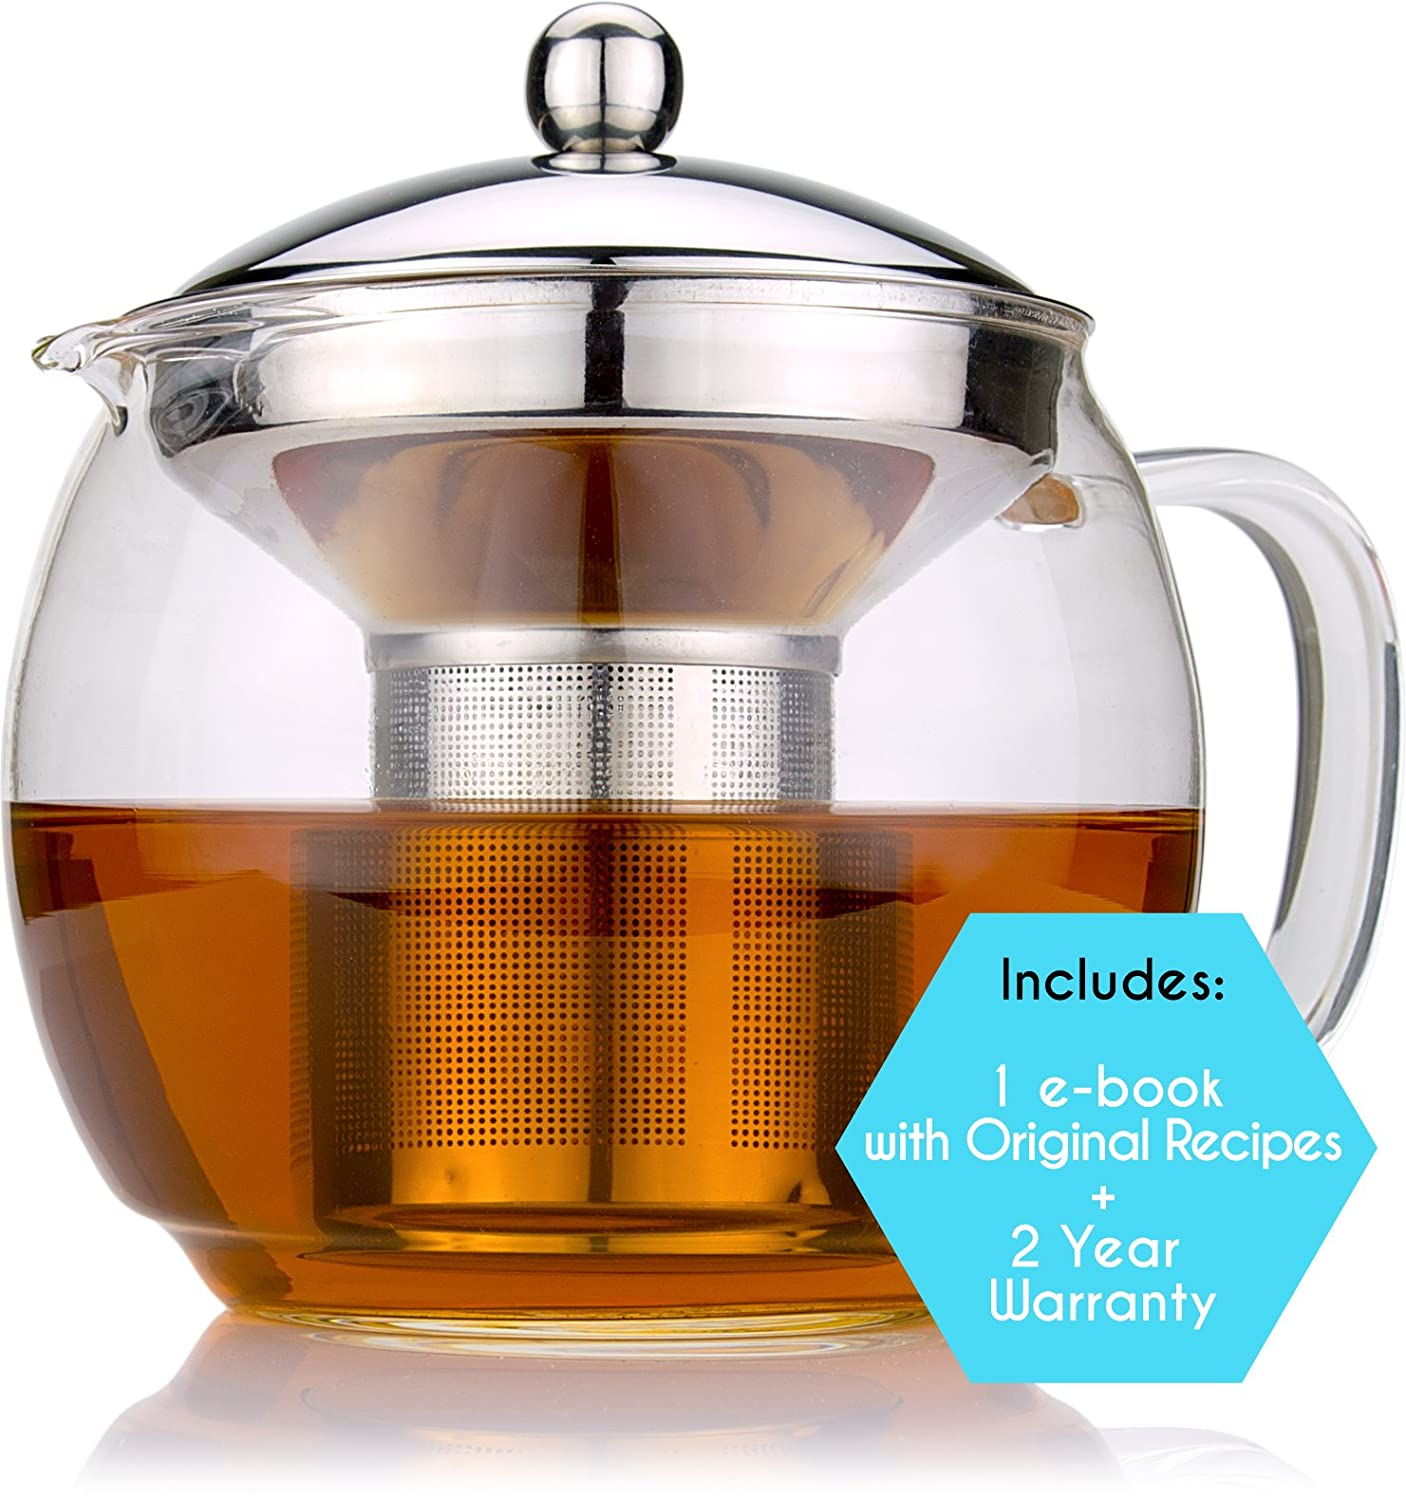 Glass Teapot with Infuser for Blooming and Loose Leaf Tea Pot by Cozyna, 41oz | 1.2 Liter, Lotus